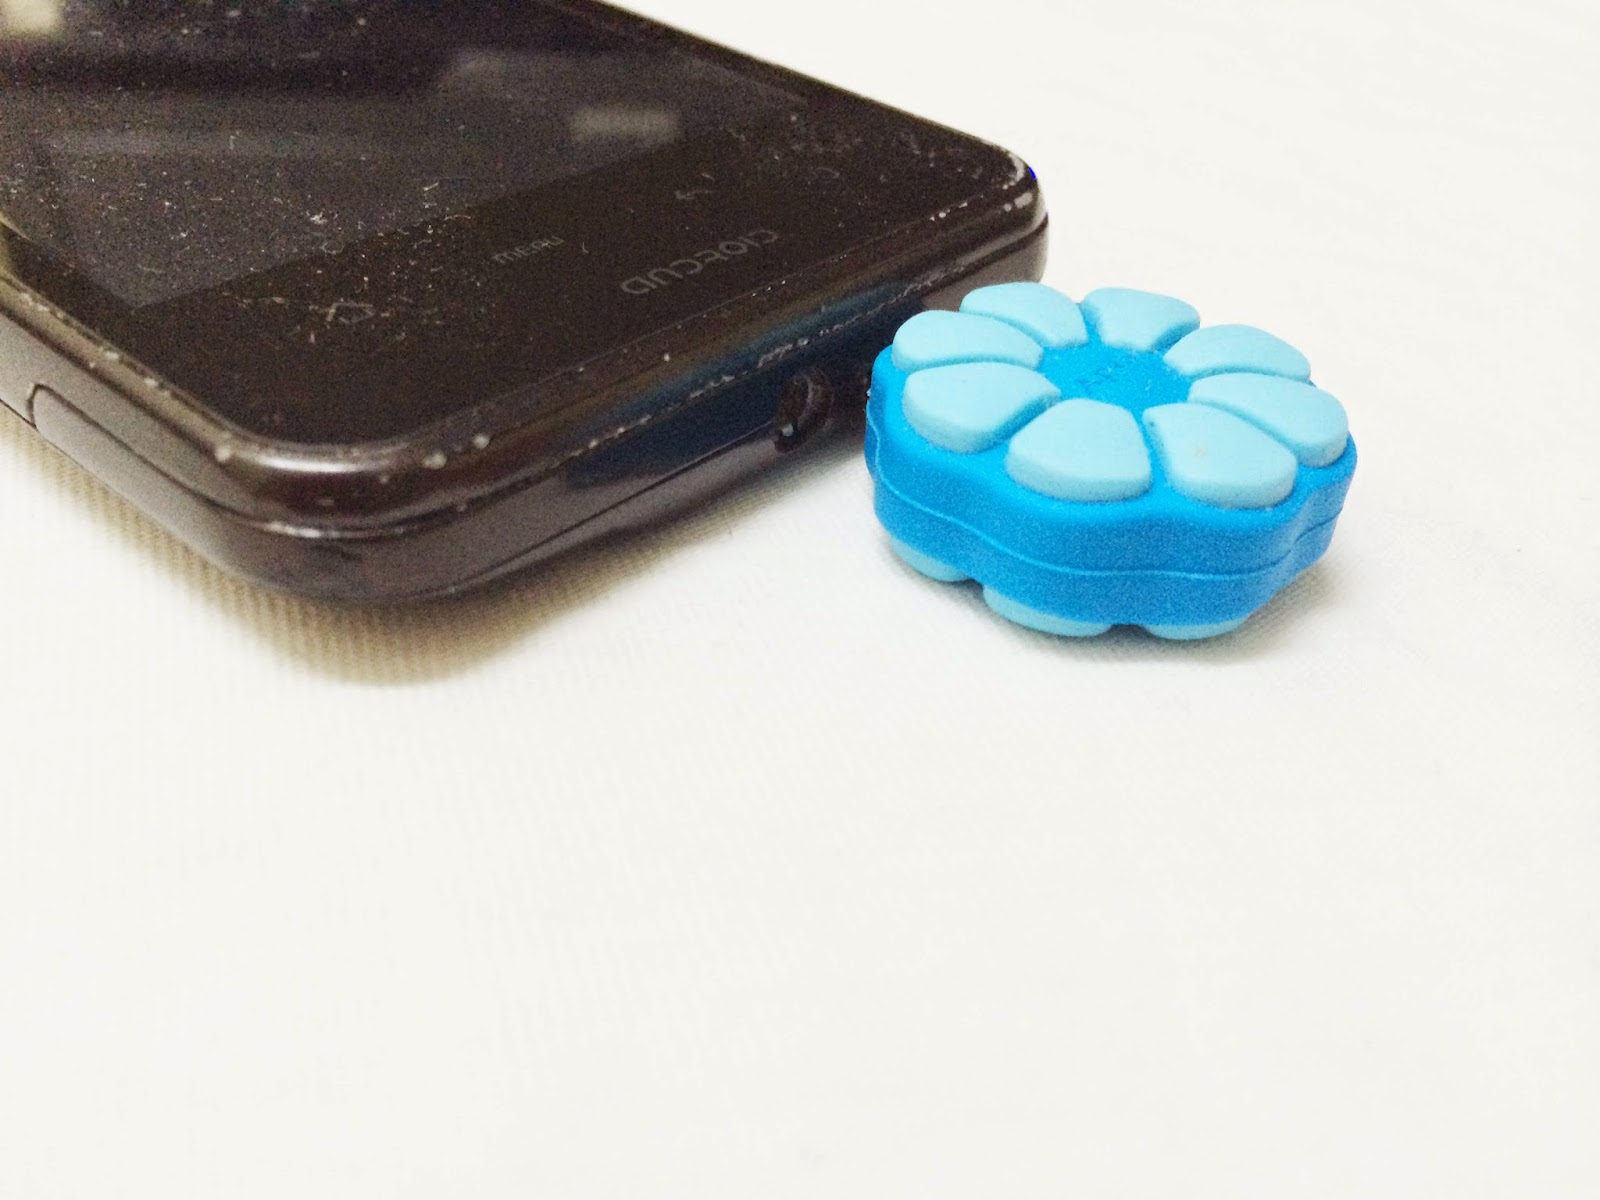 APACER AH 172 FLOWER CANDY Mobile Flash Drives OTG Review 21